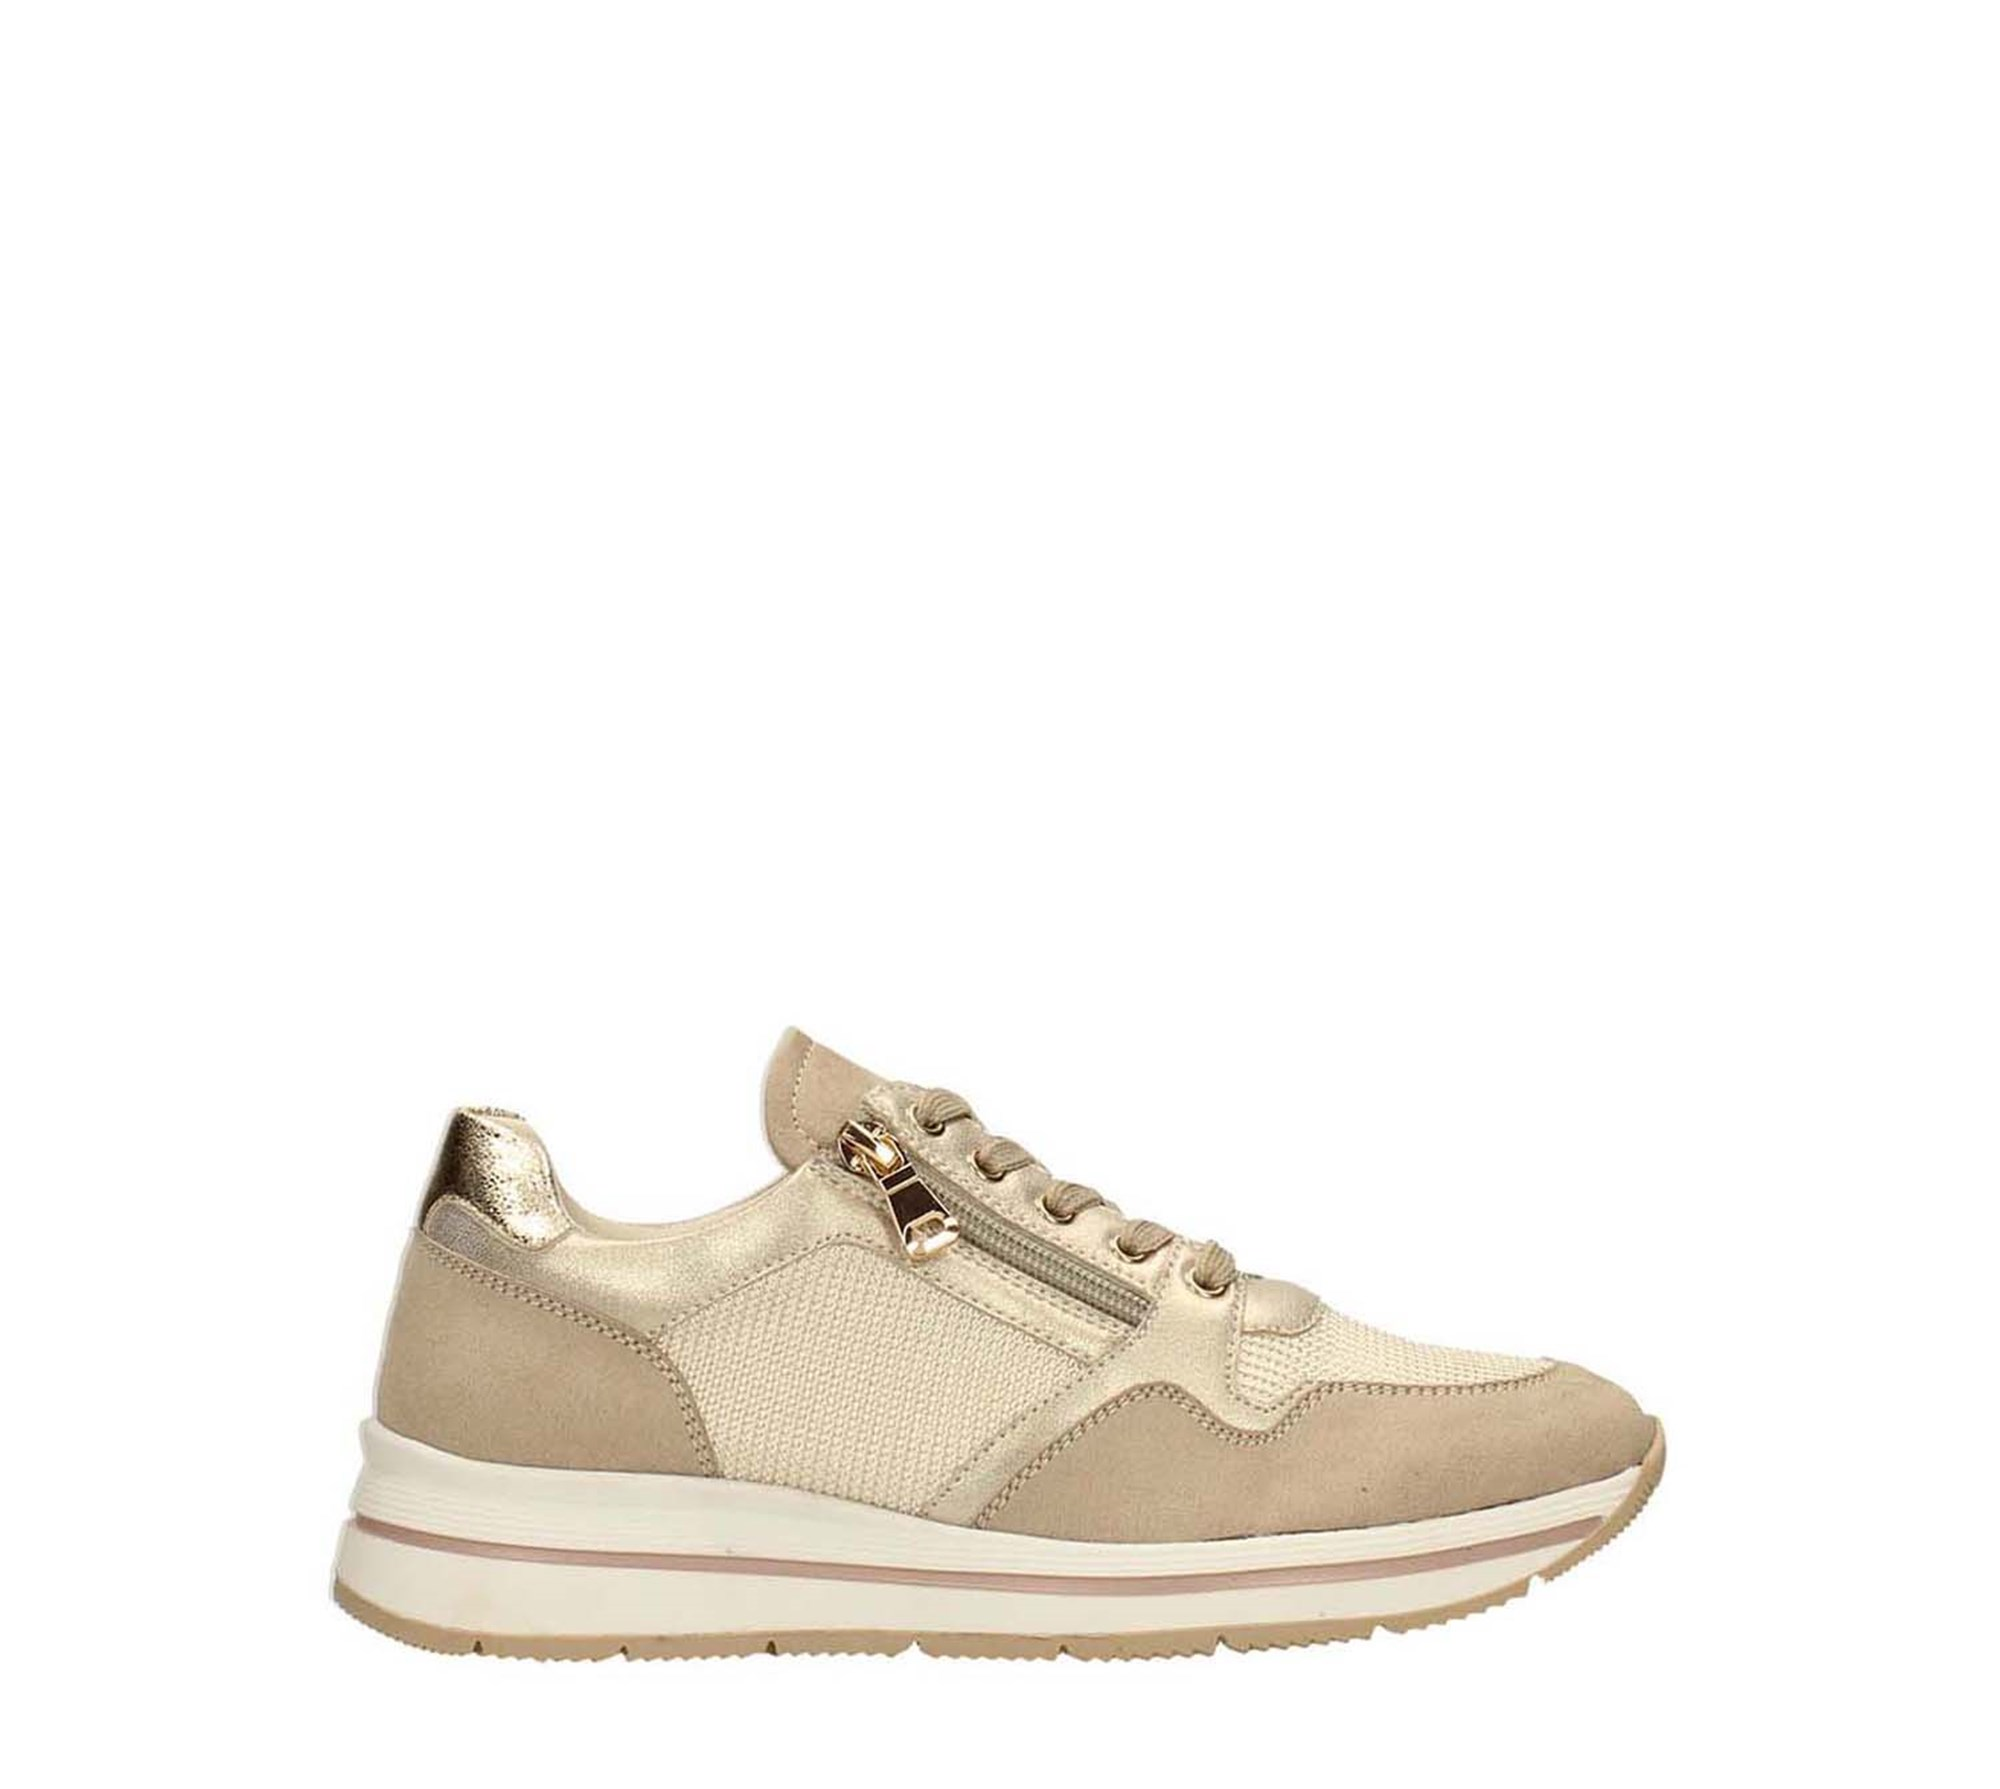 Tata Italia Shoes Woman Sneakers TA2A11-2